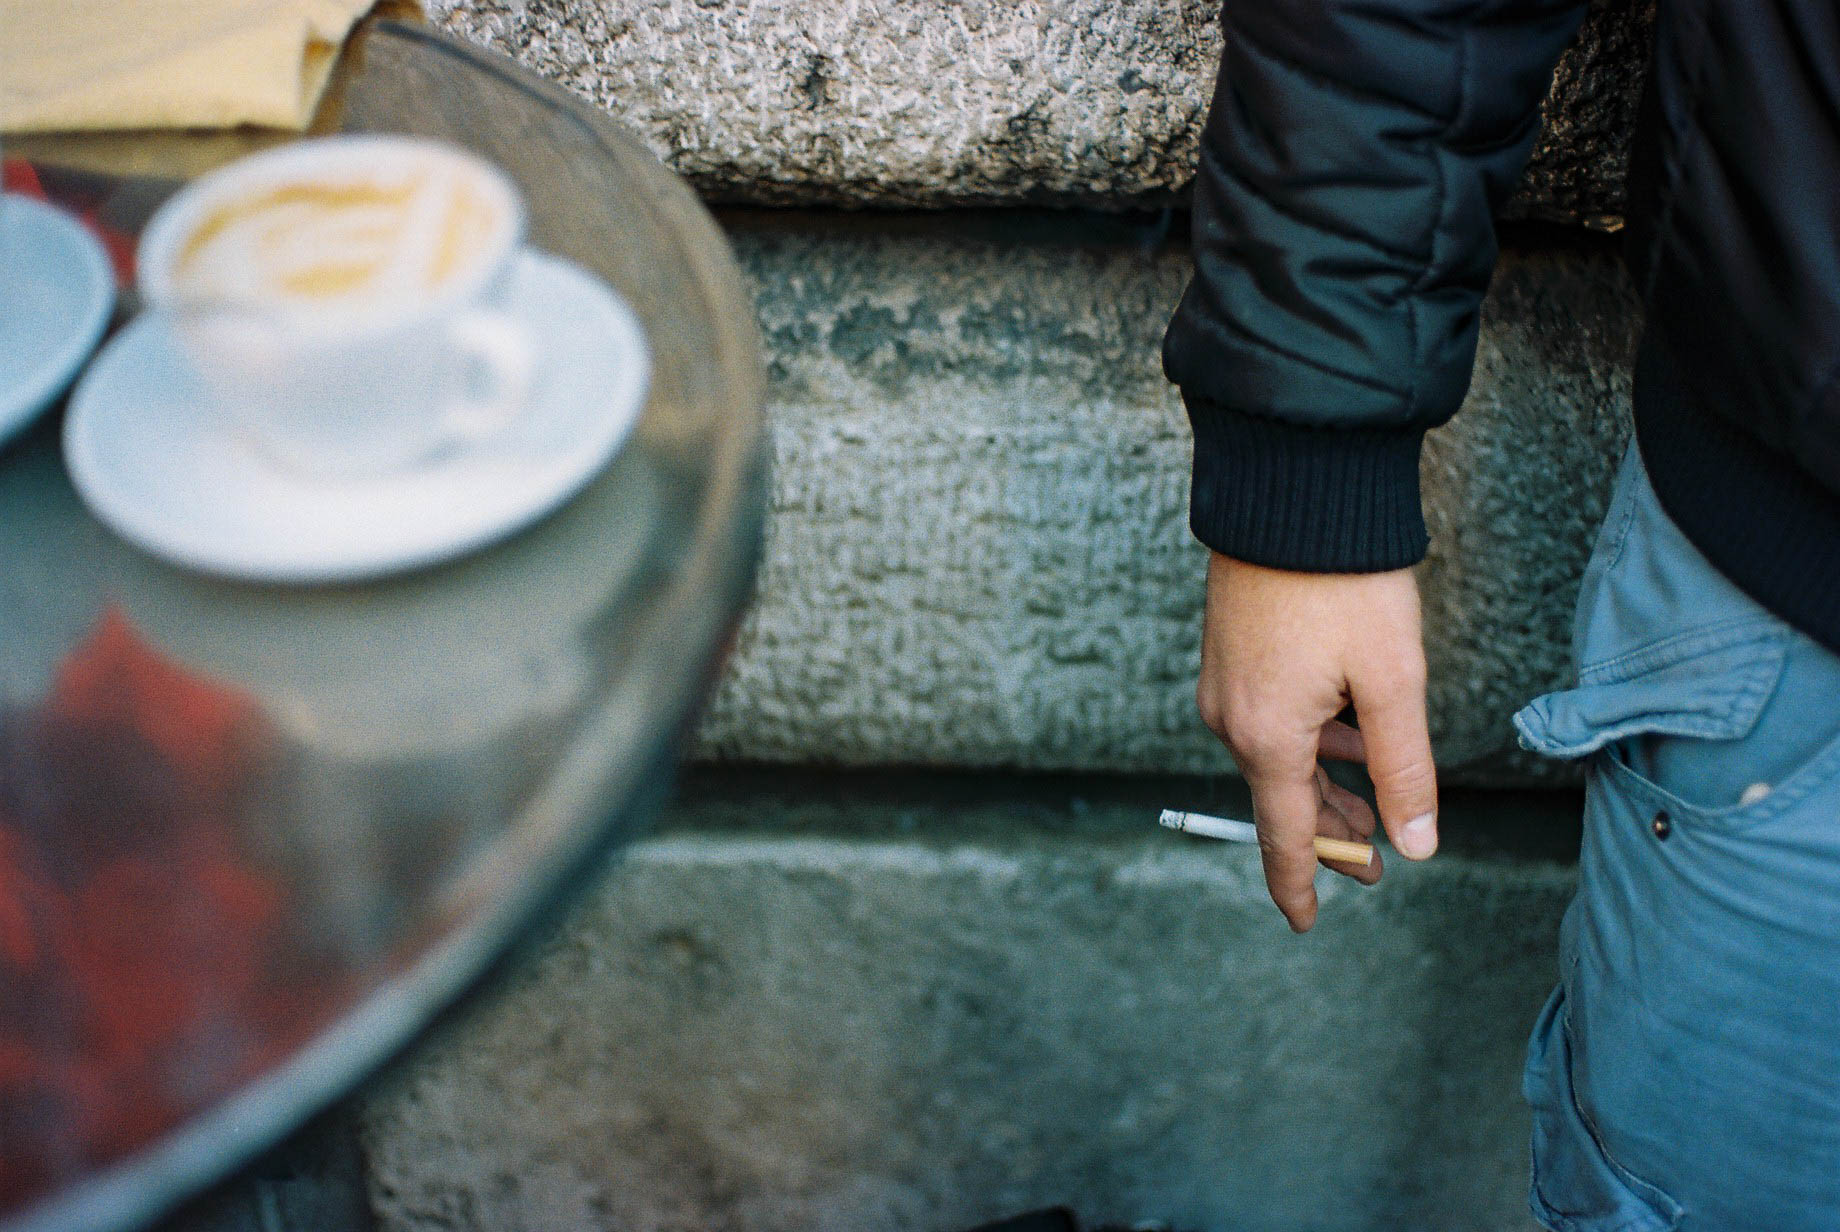 Cigarette Italian Winter Travels Lifestyle Travel Photographer